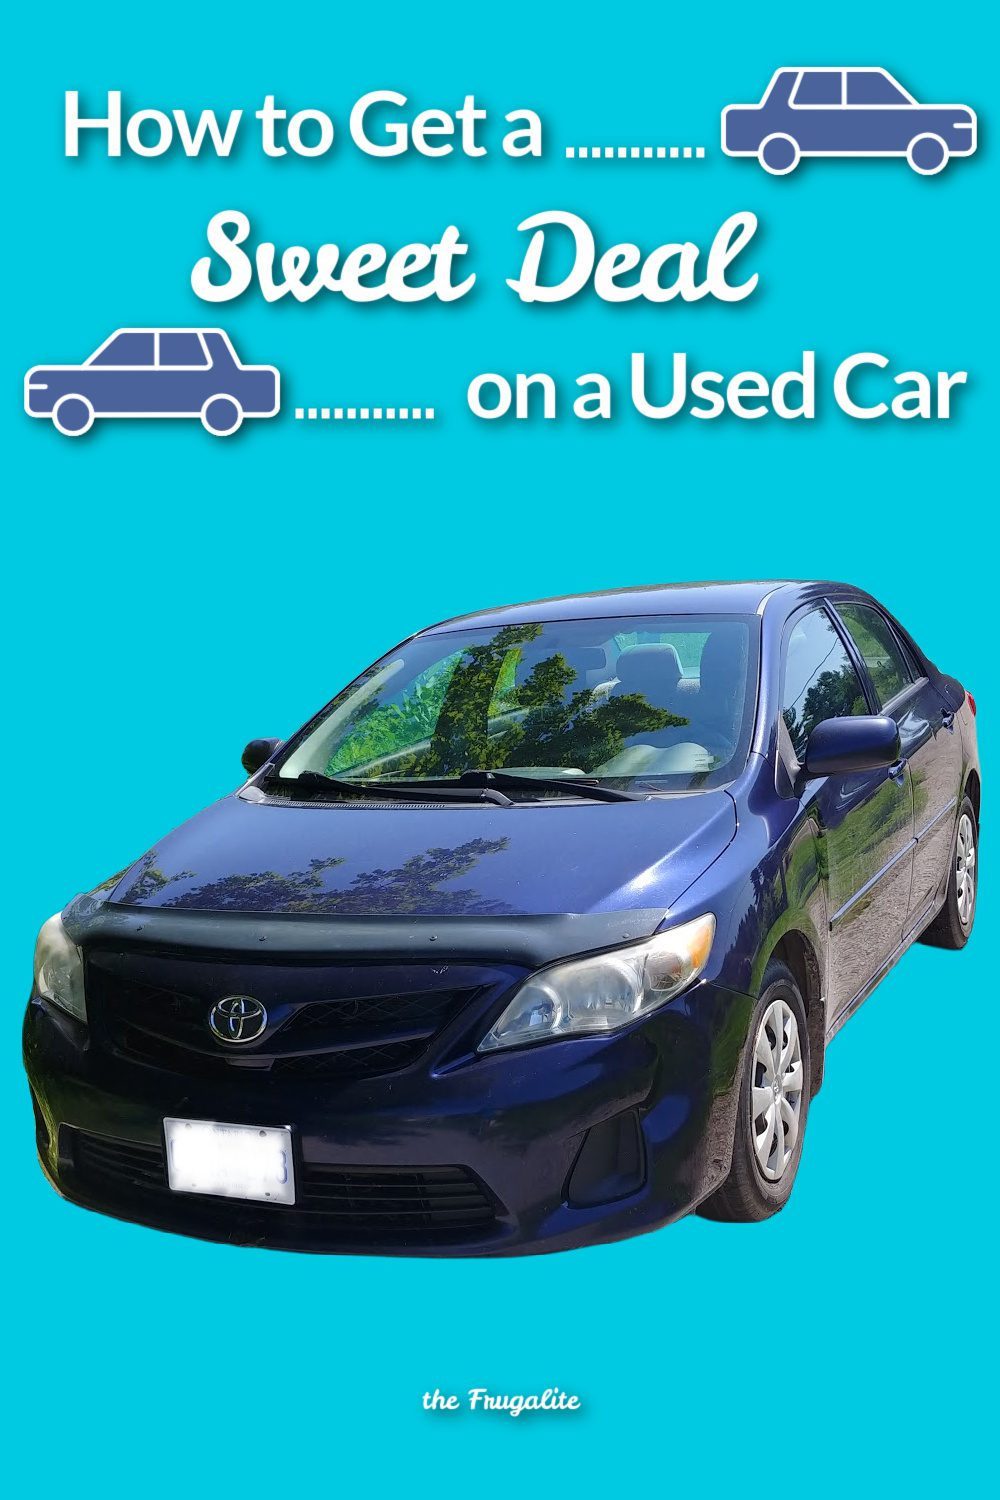 How to Get a Sweet Deal on a Used Car